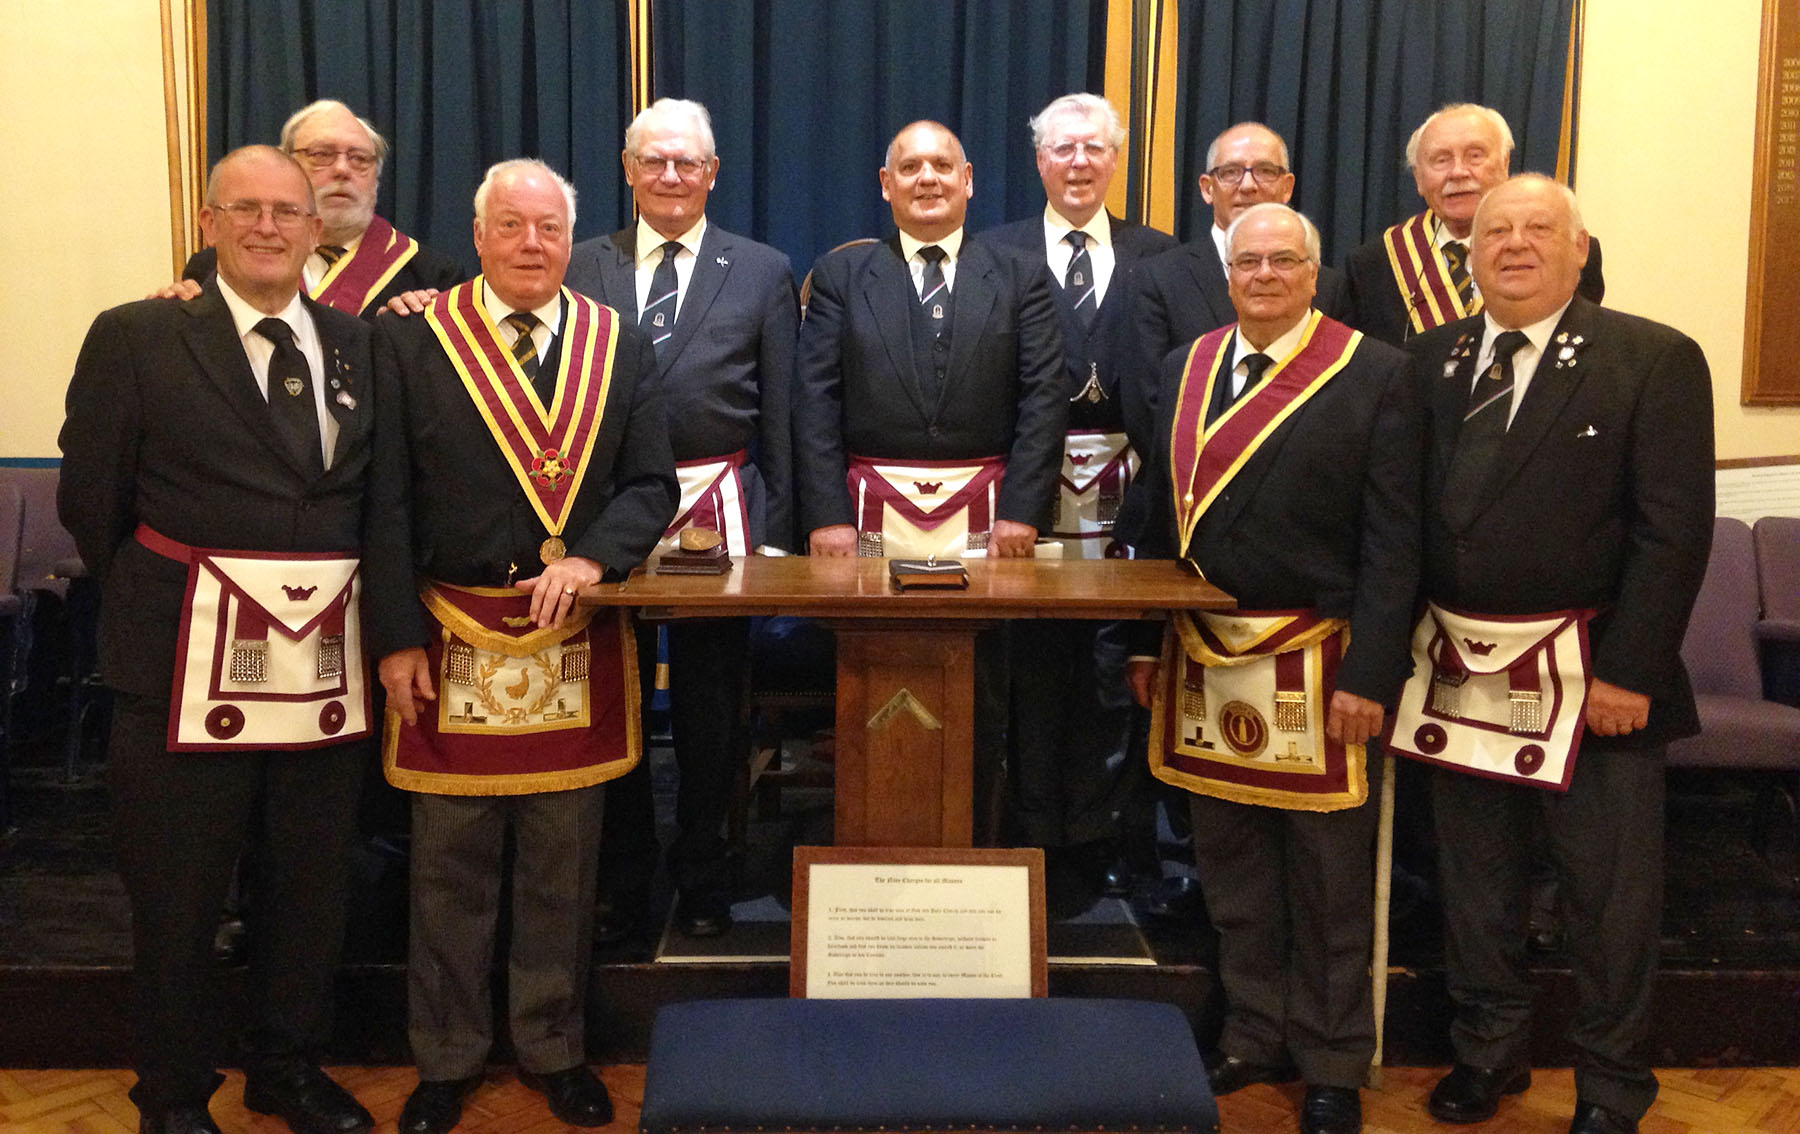 Court of Aelle No 25 - Installation Meeting & Annual Visit by the Provincial Grand Master